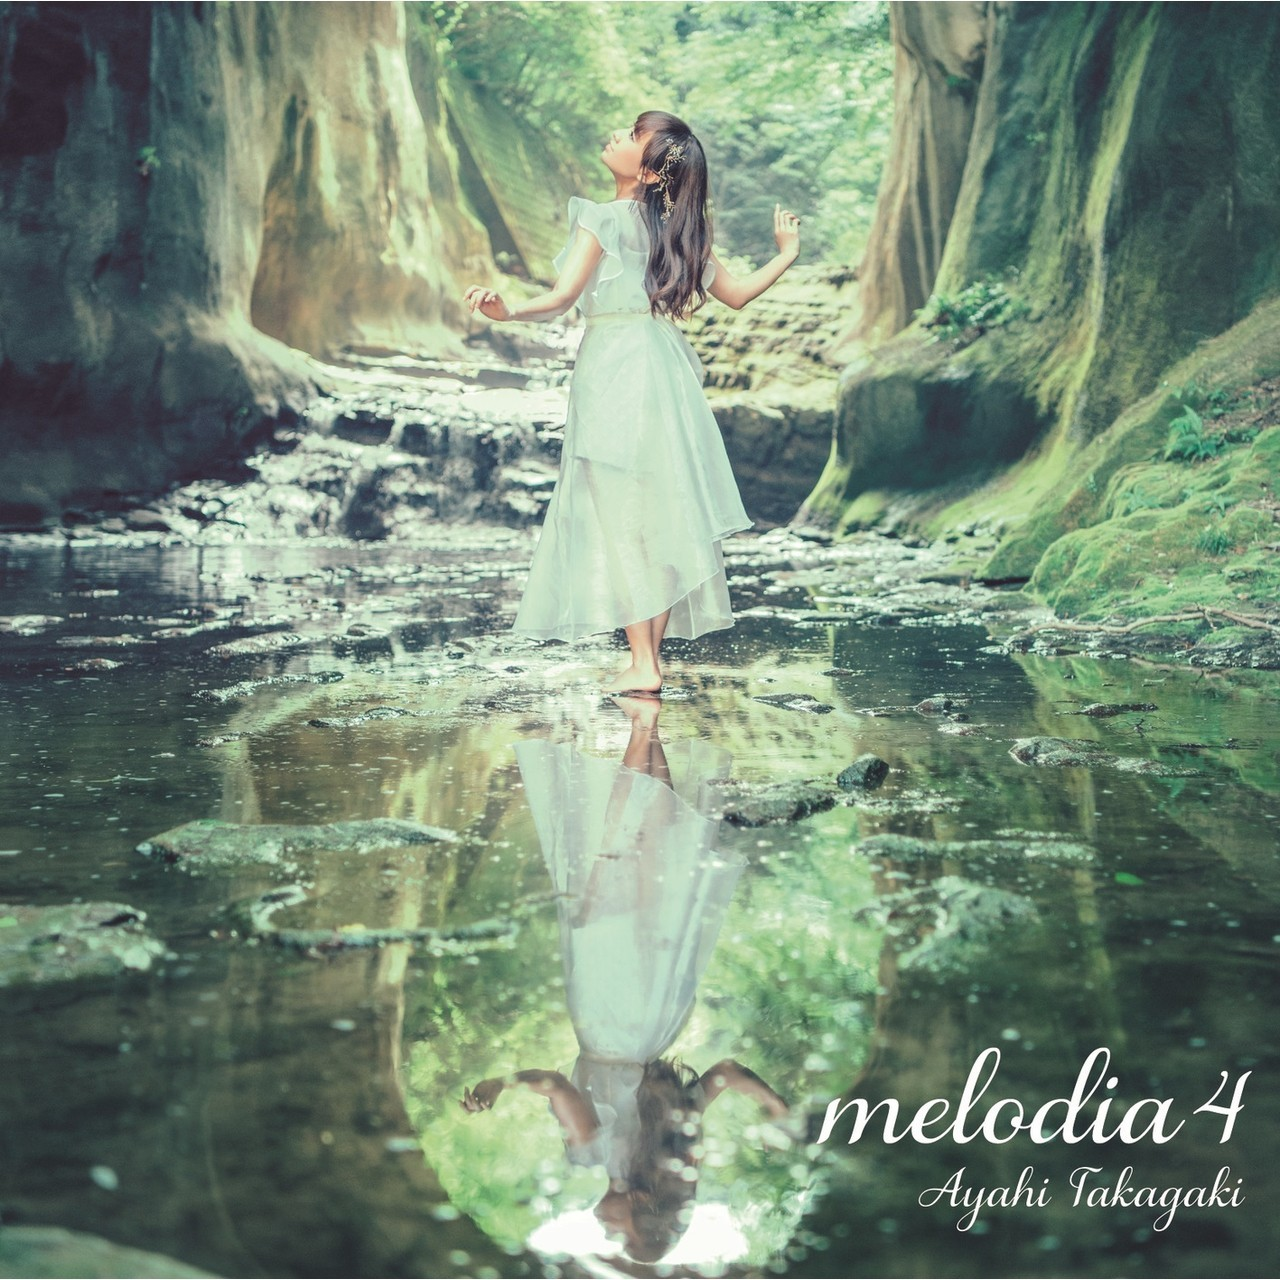 高垣彩陽 (Ayahi Takagaki) – melodia 4 [24bit Lossless + MP3 VBR / WEB]  [2018.09.26]